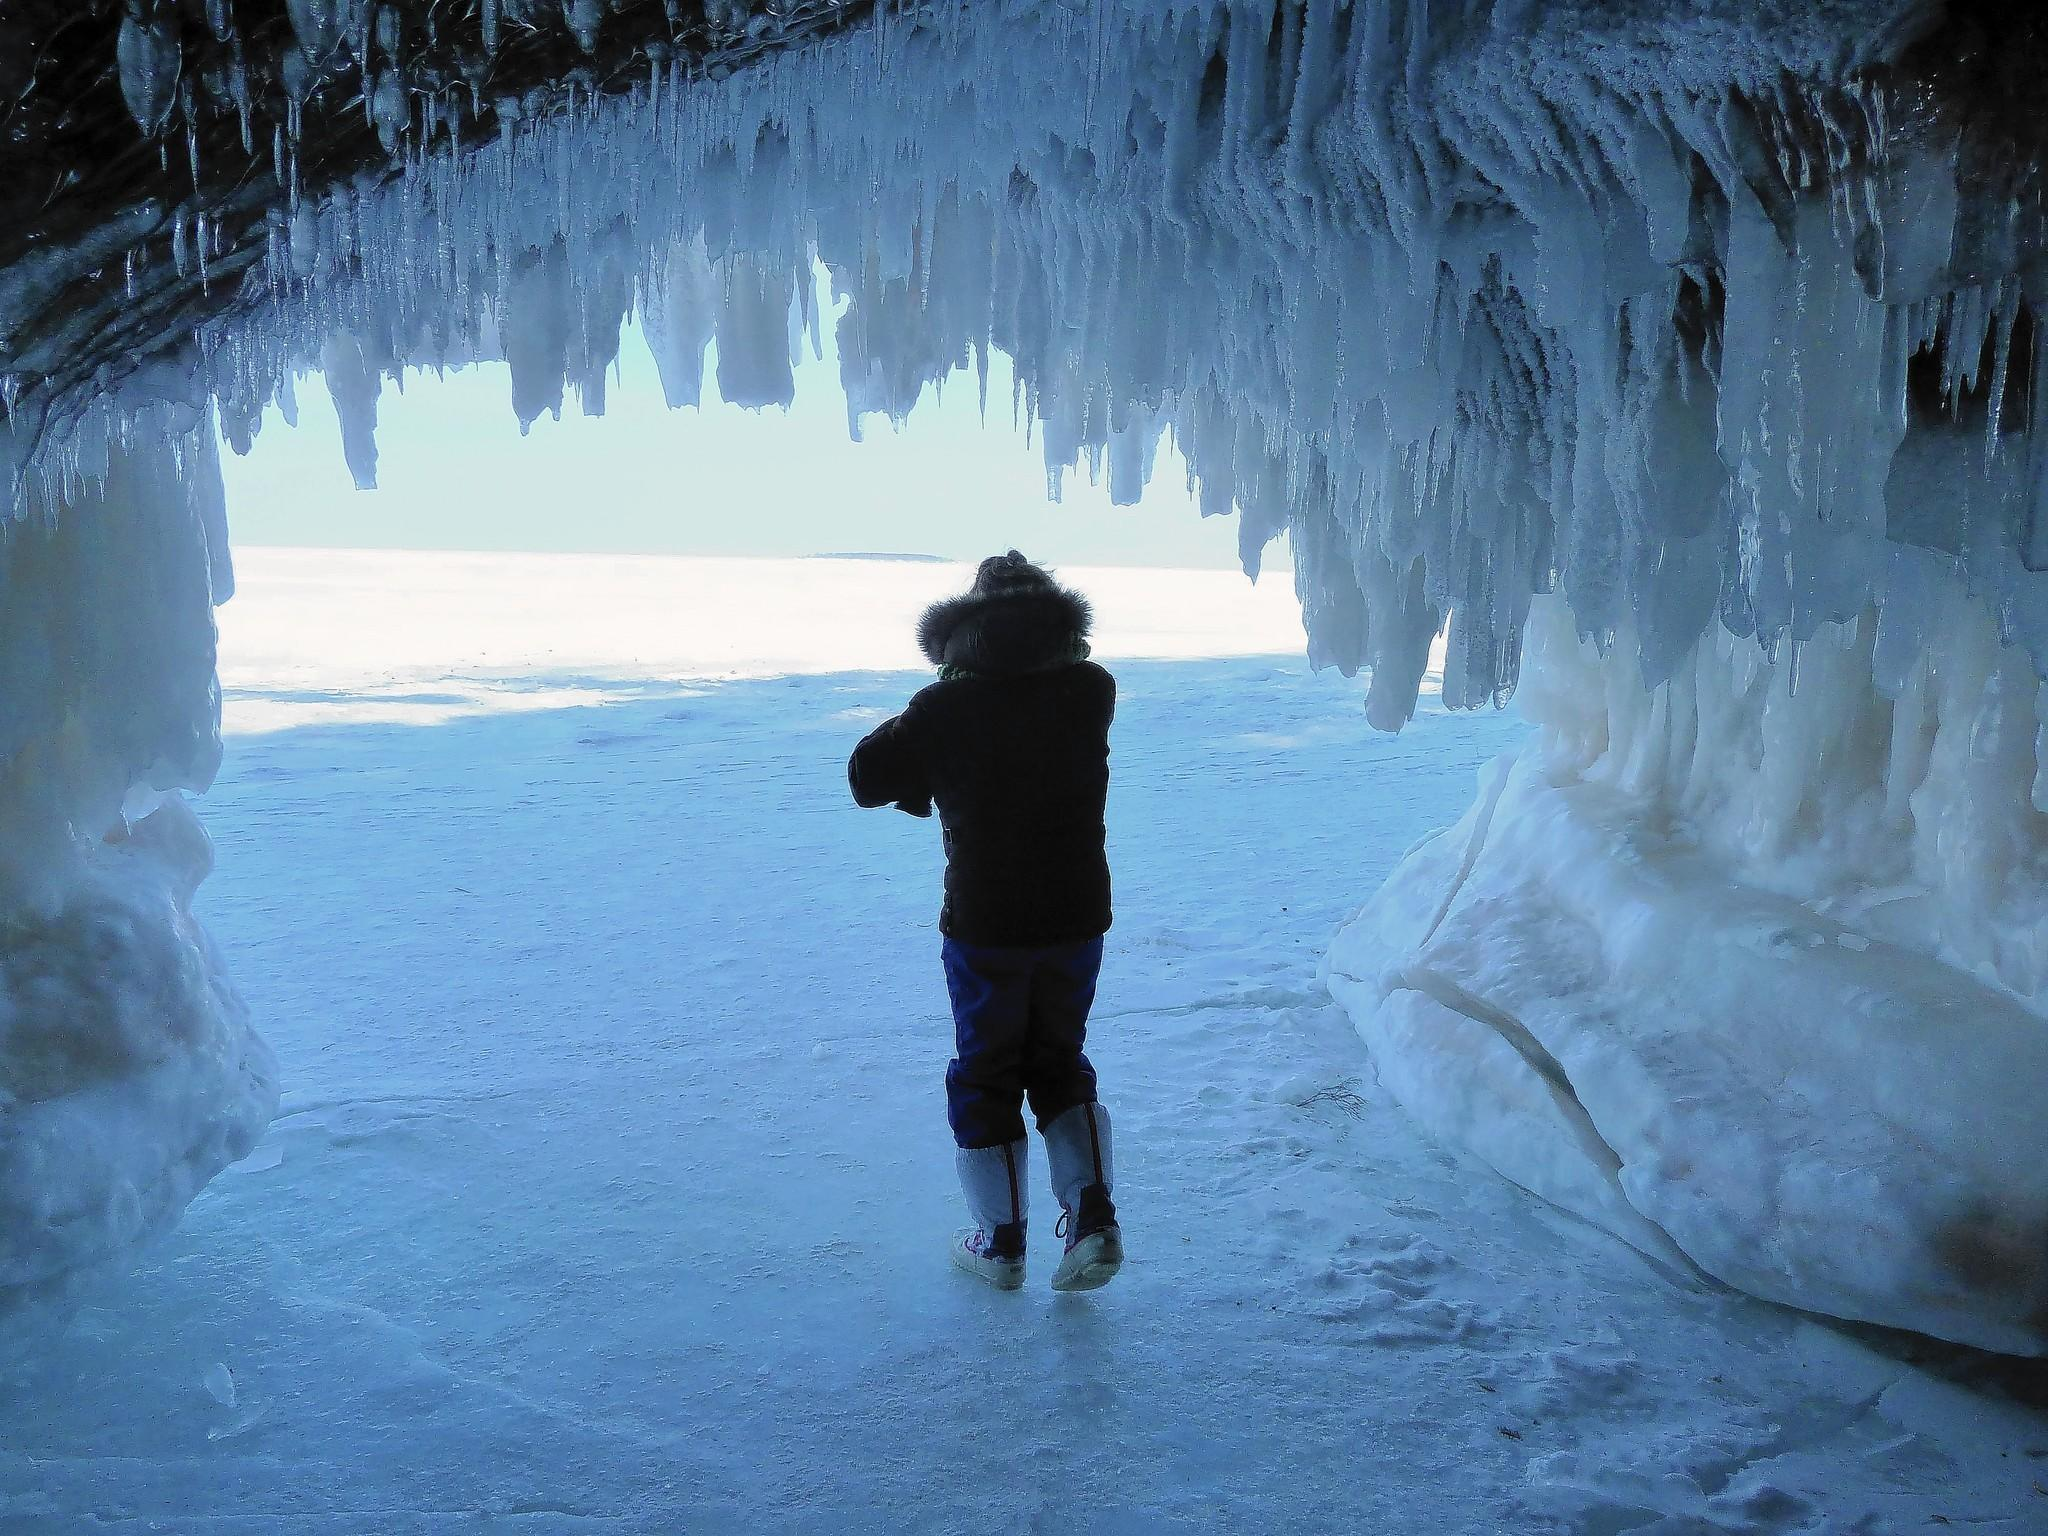 Patti Heil of Bloomington, Minn., is among hordes of tourists visiting frozen sea caves near Cornucopia, Wis. The normally inaccessible caves can be reached on foot thanks to a record-setting ice cover on the Great Lakes.